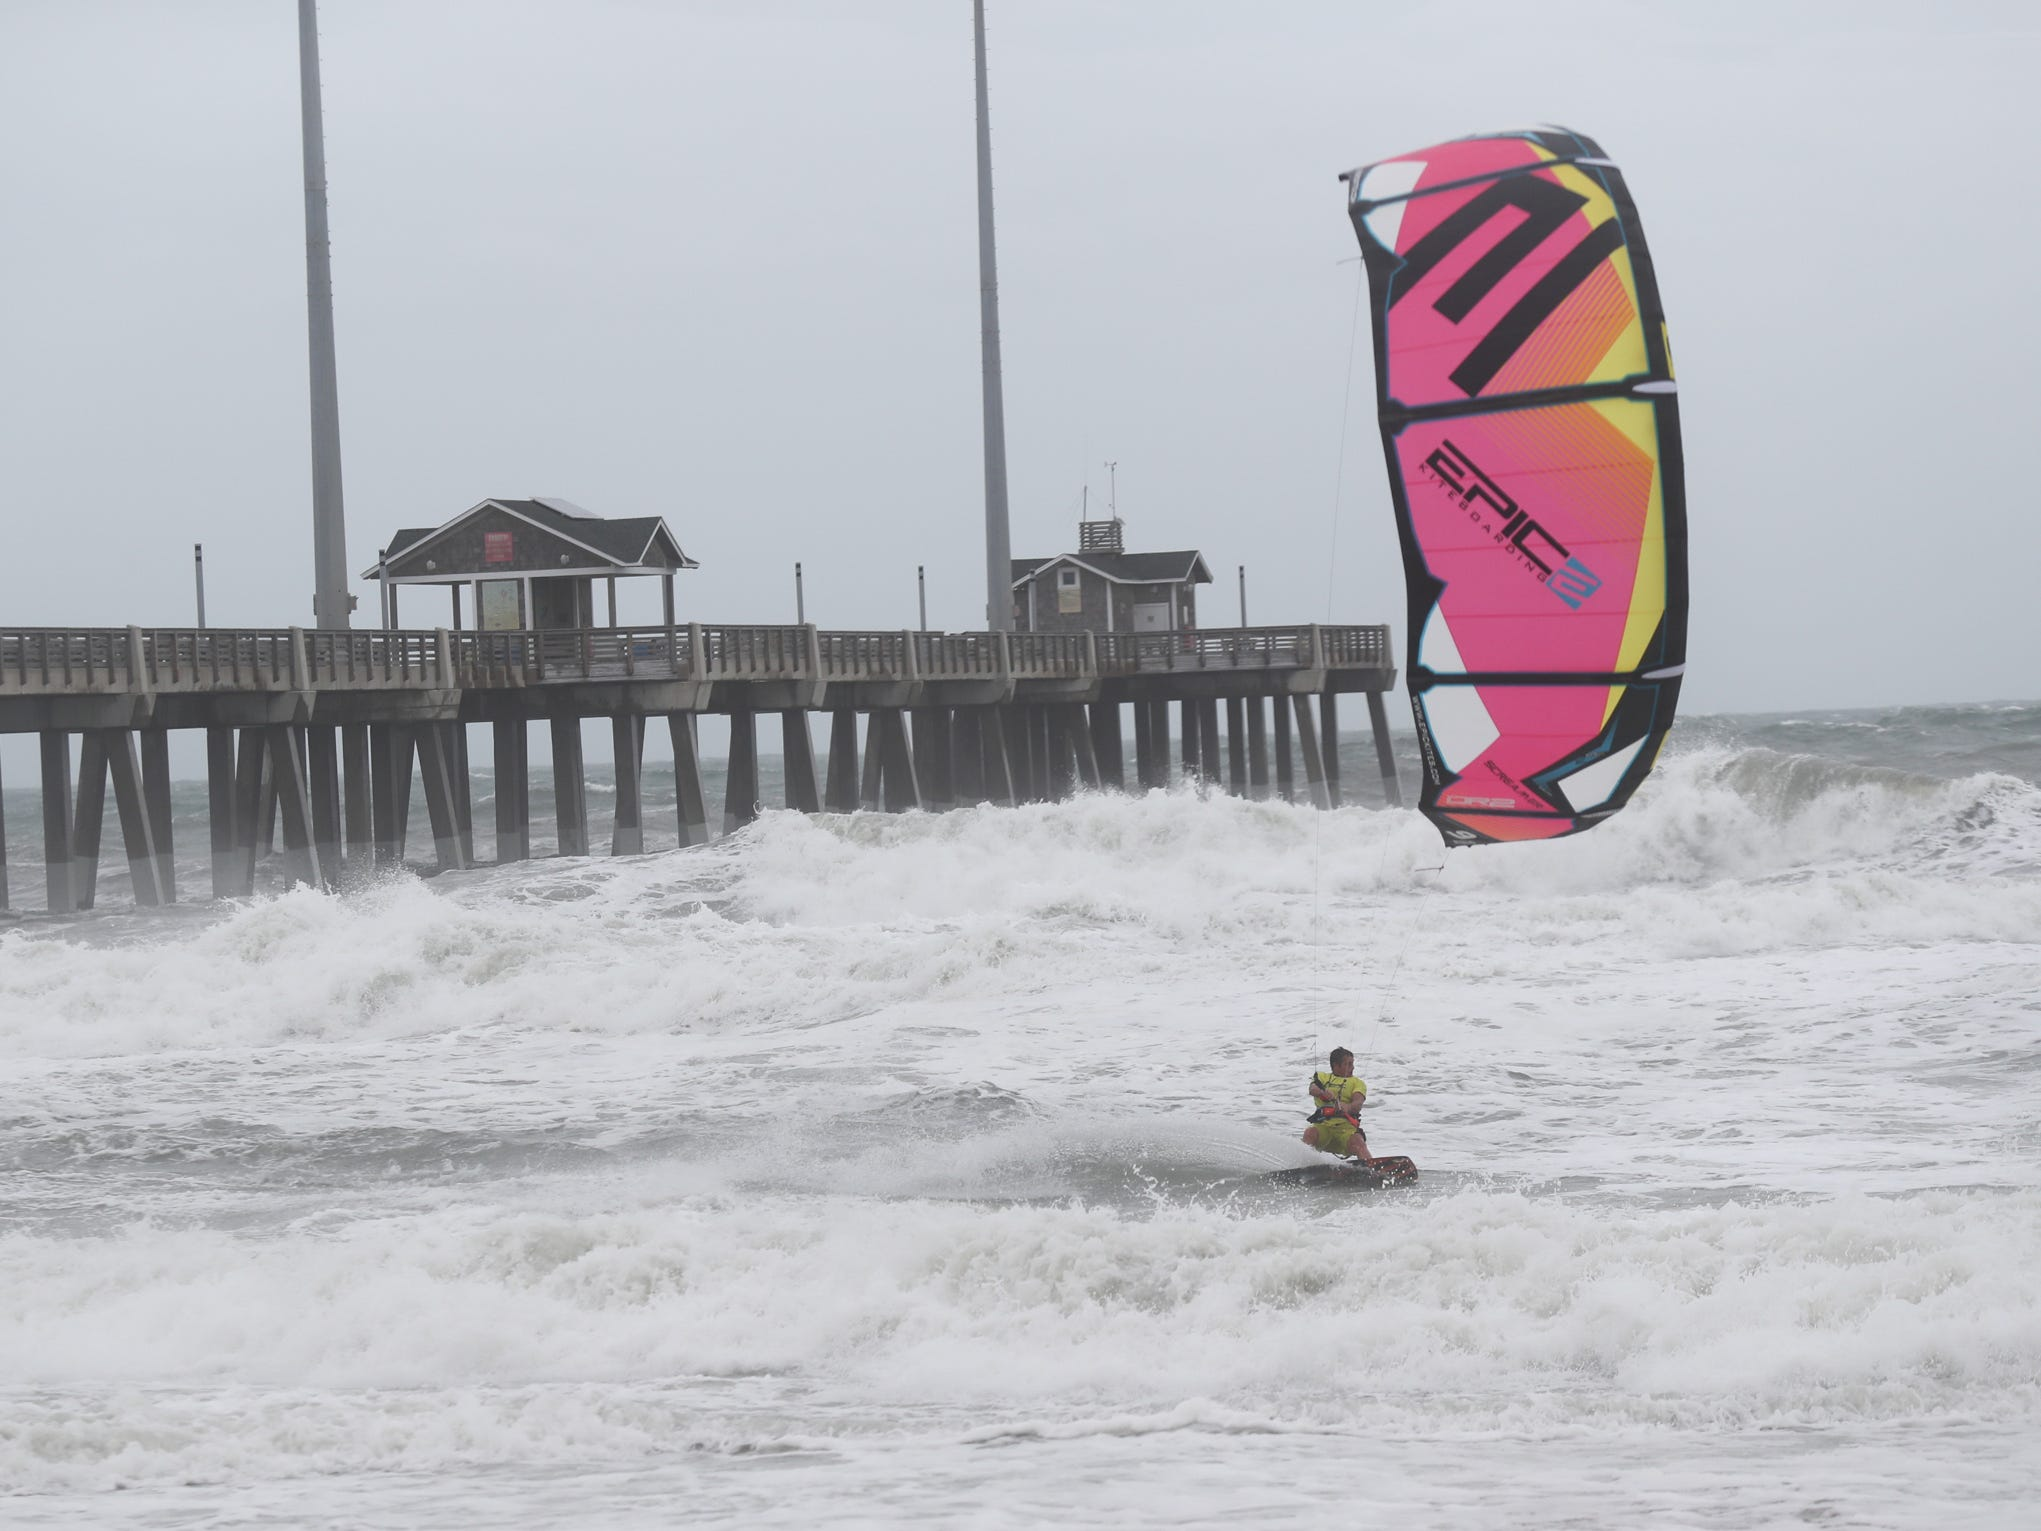 September 14, 2018; Nags Head, NC, USA; Kiteboarder Dimitri Maramenides surfs the waters off Jennette's Pier in Nags Head, North Carolina on Friday, September 14, 2018.